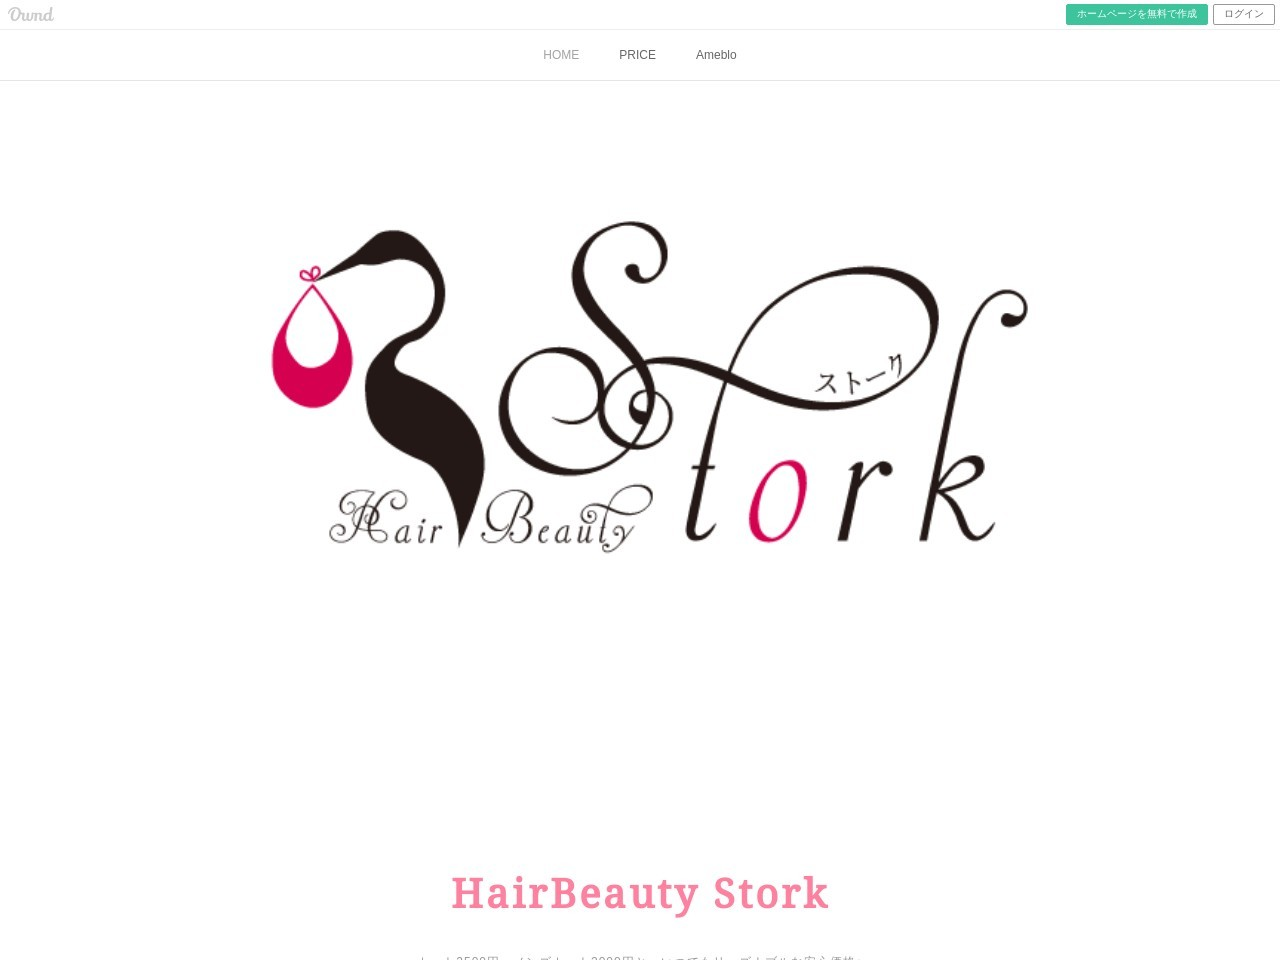 Hair Beauty Stork